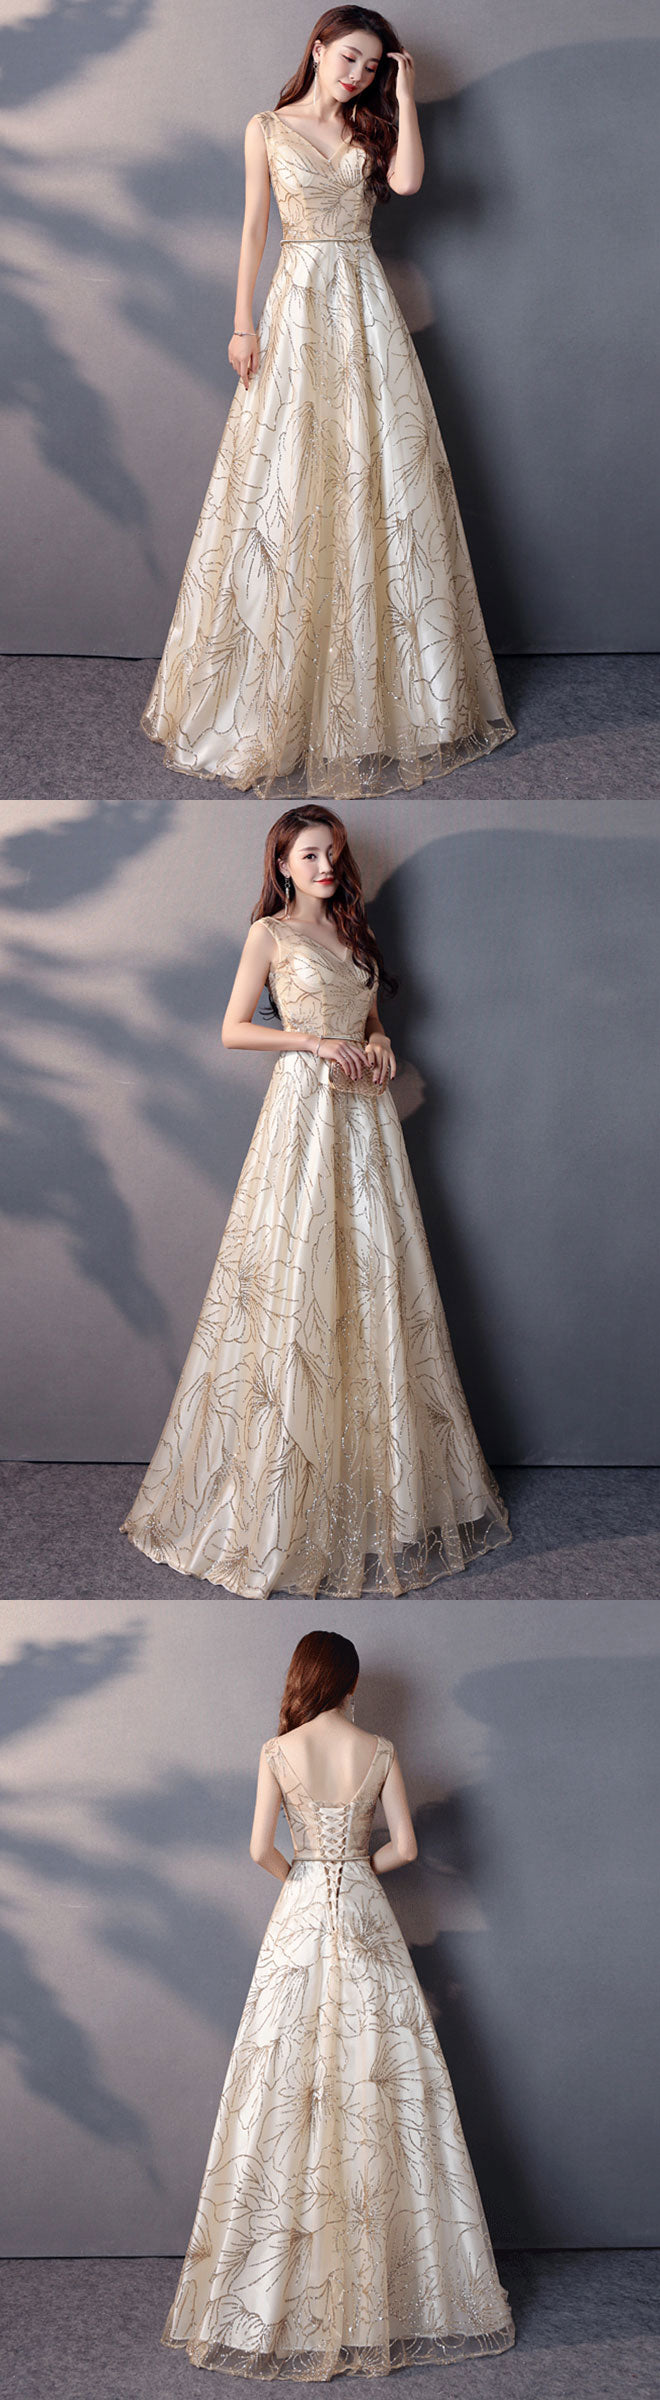 Champagne v neck long prom dress, evening dress